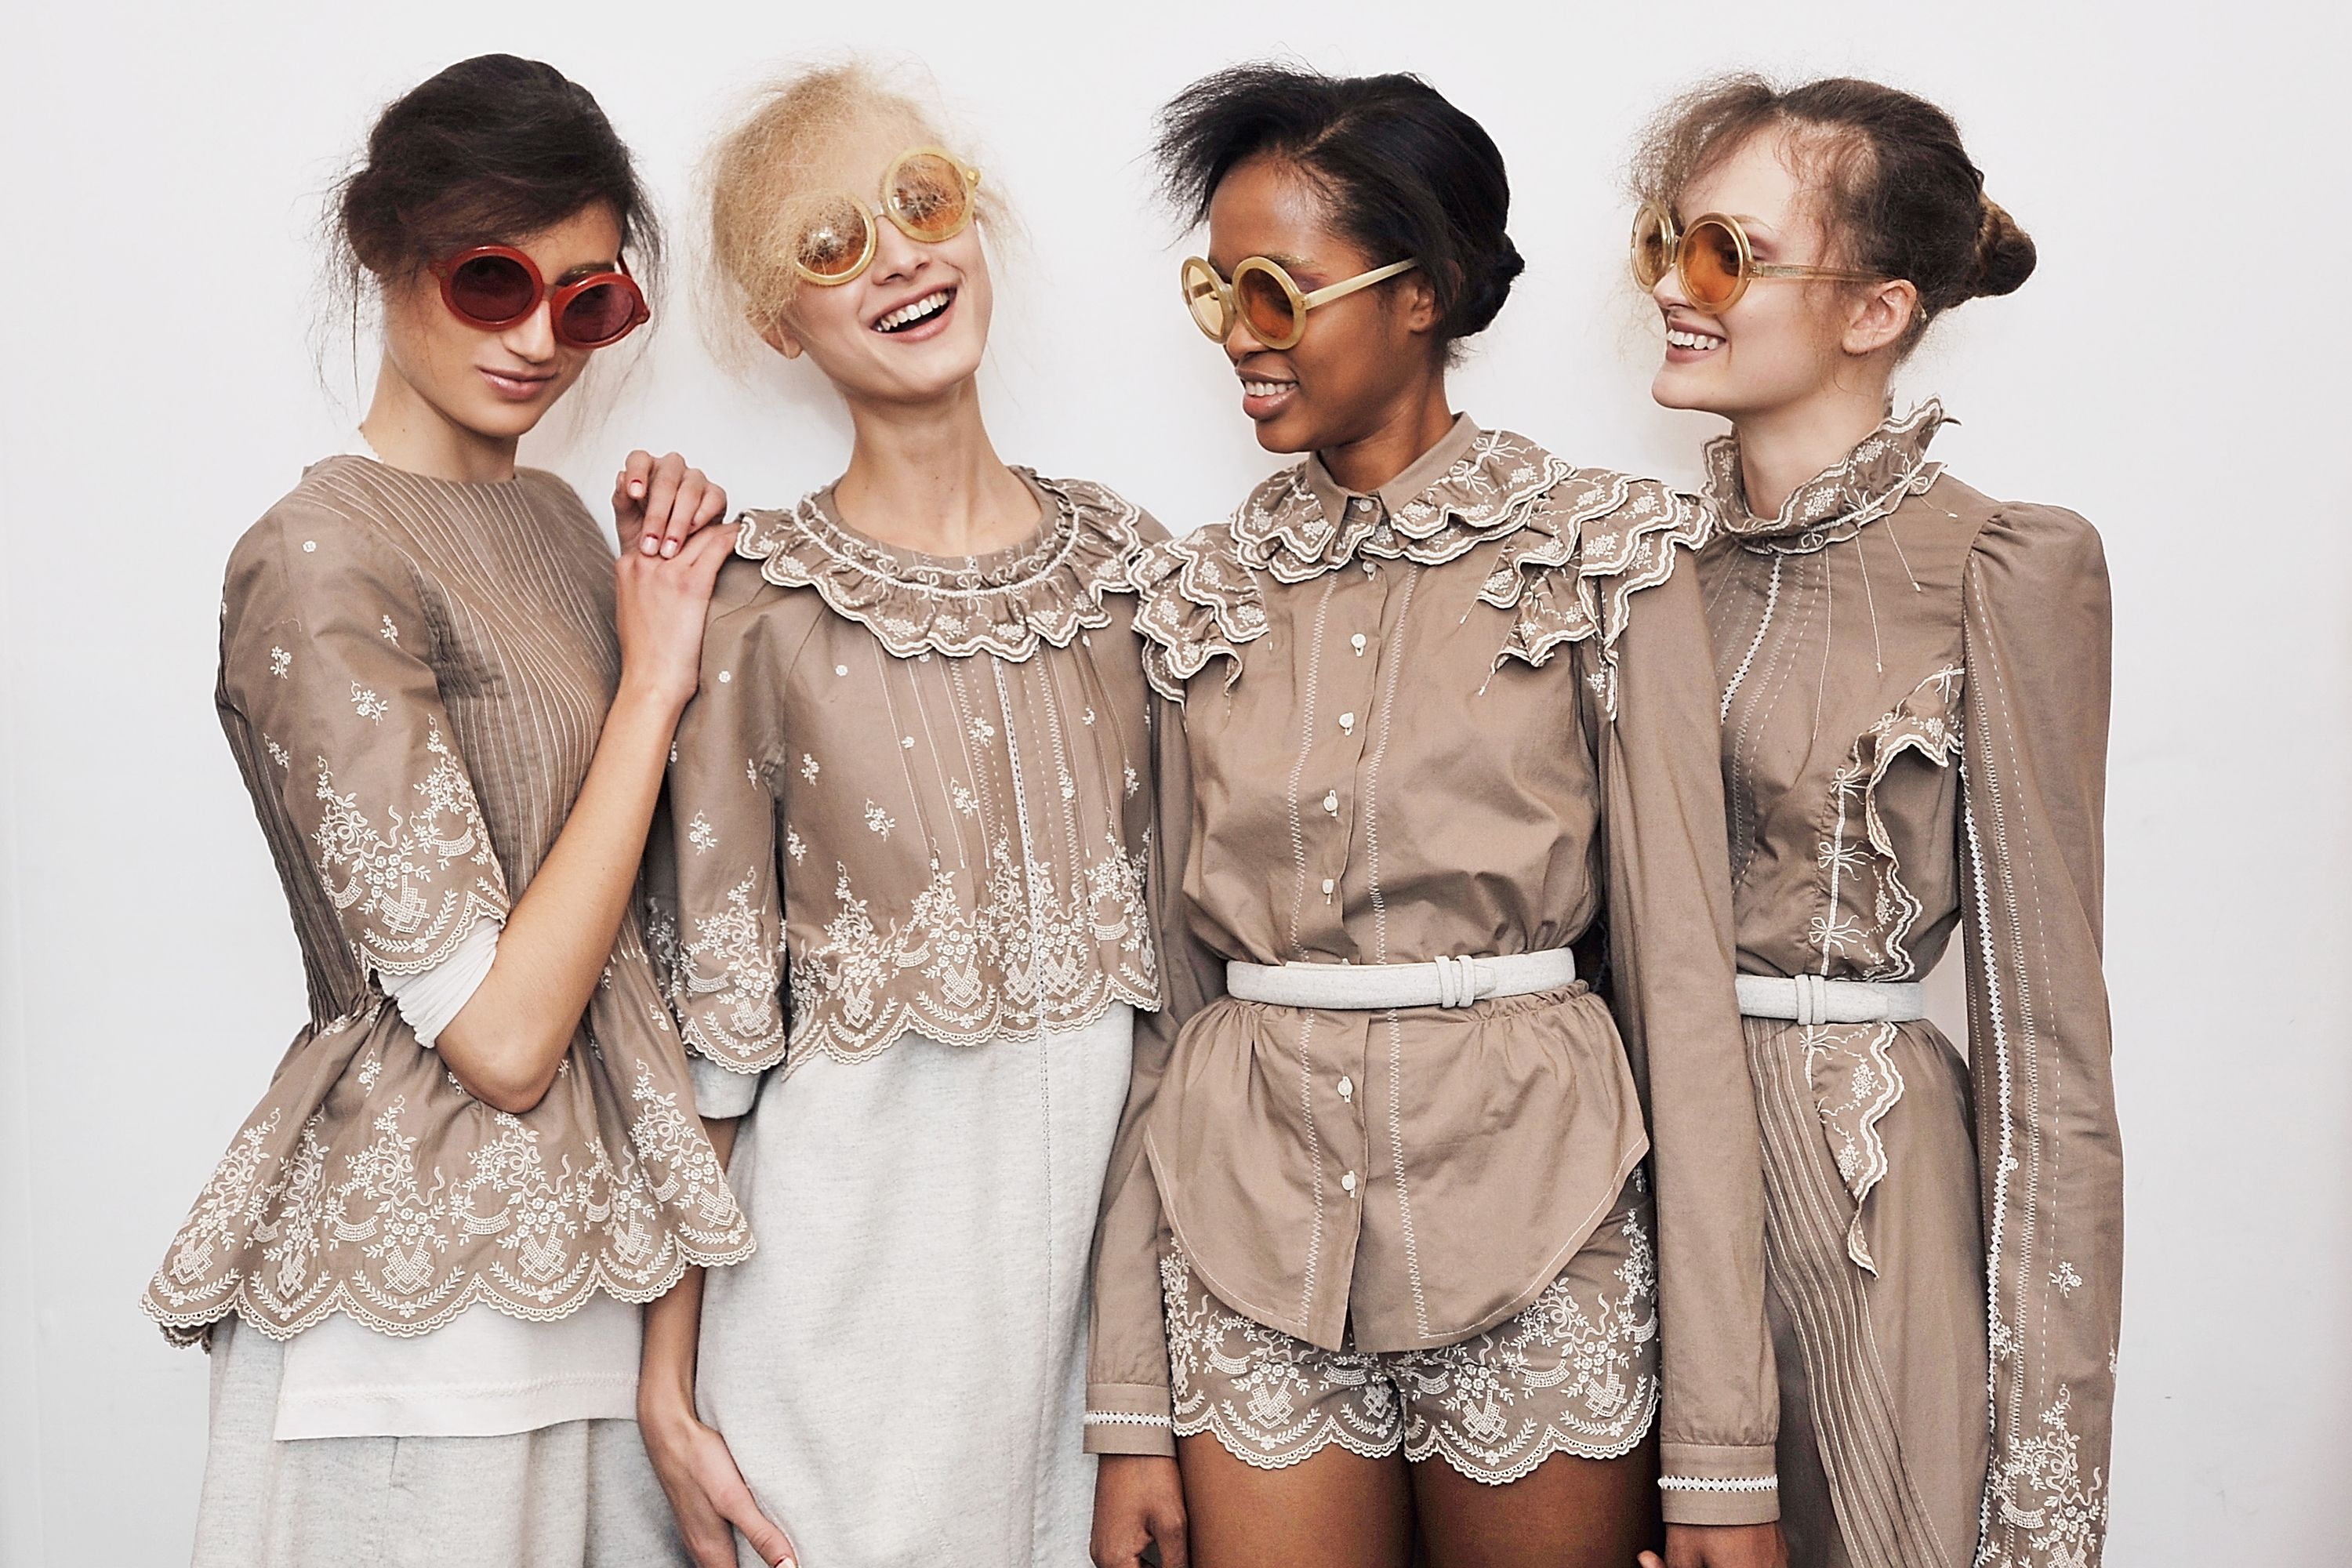 Models Treated Badly Linden Staub Launches